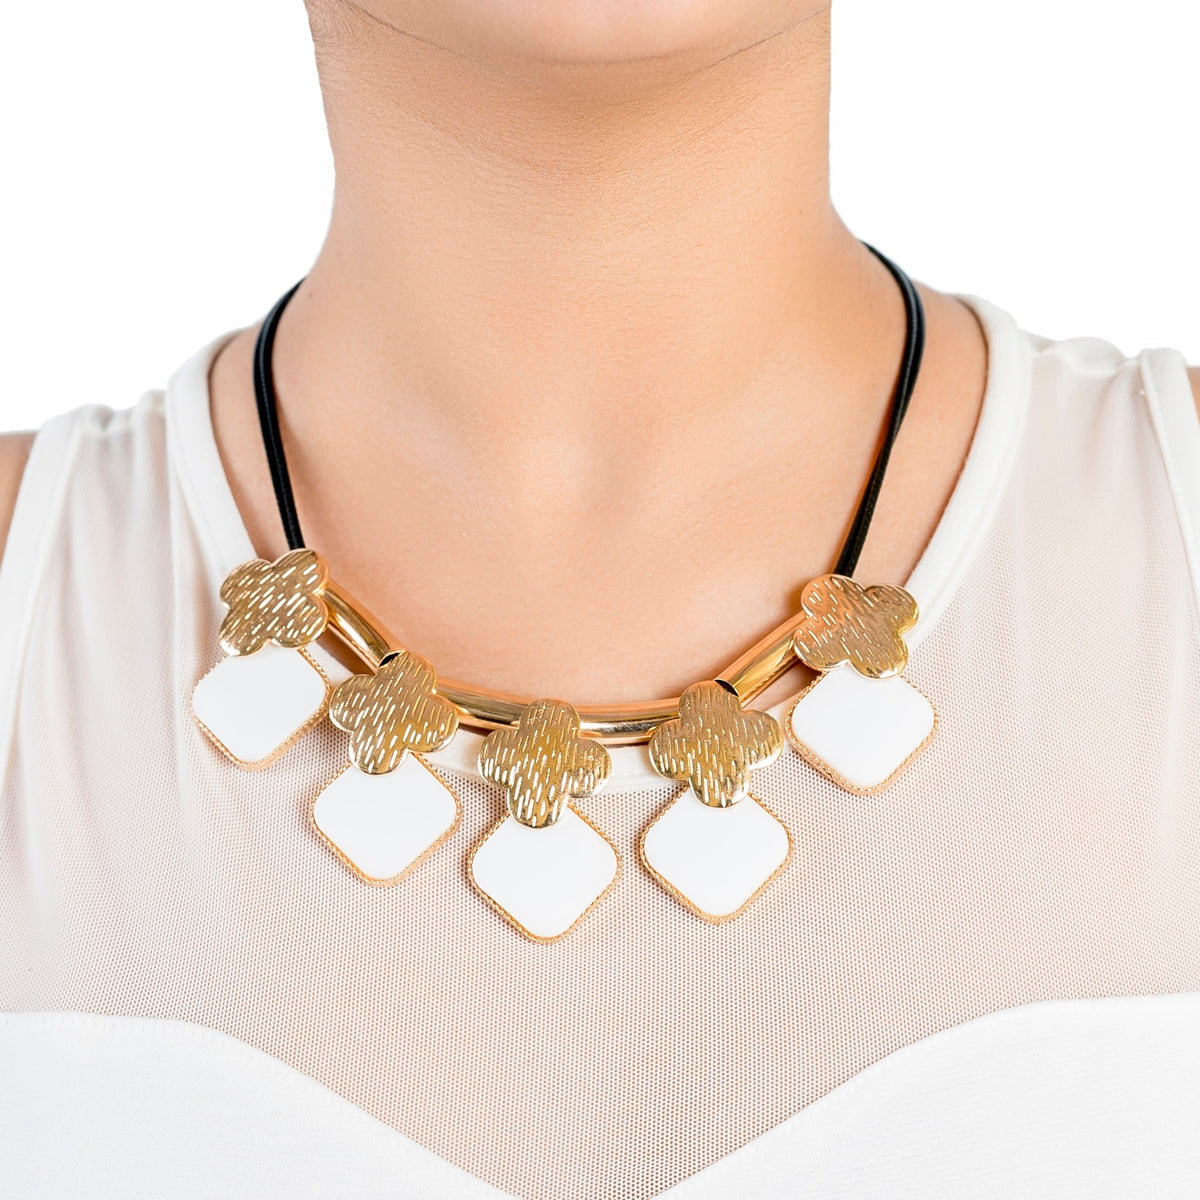 Four Leaf Design Onyx Black Necklace - Kiyara